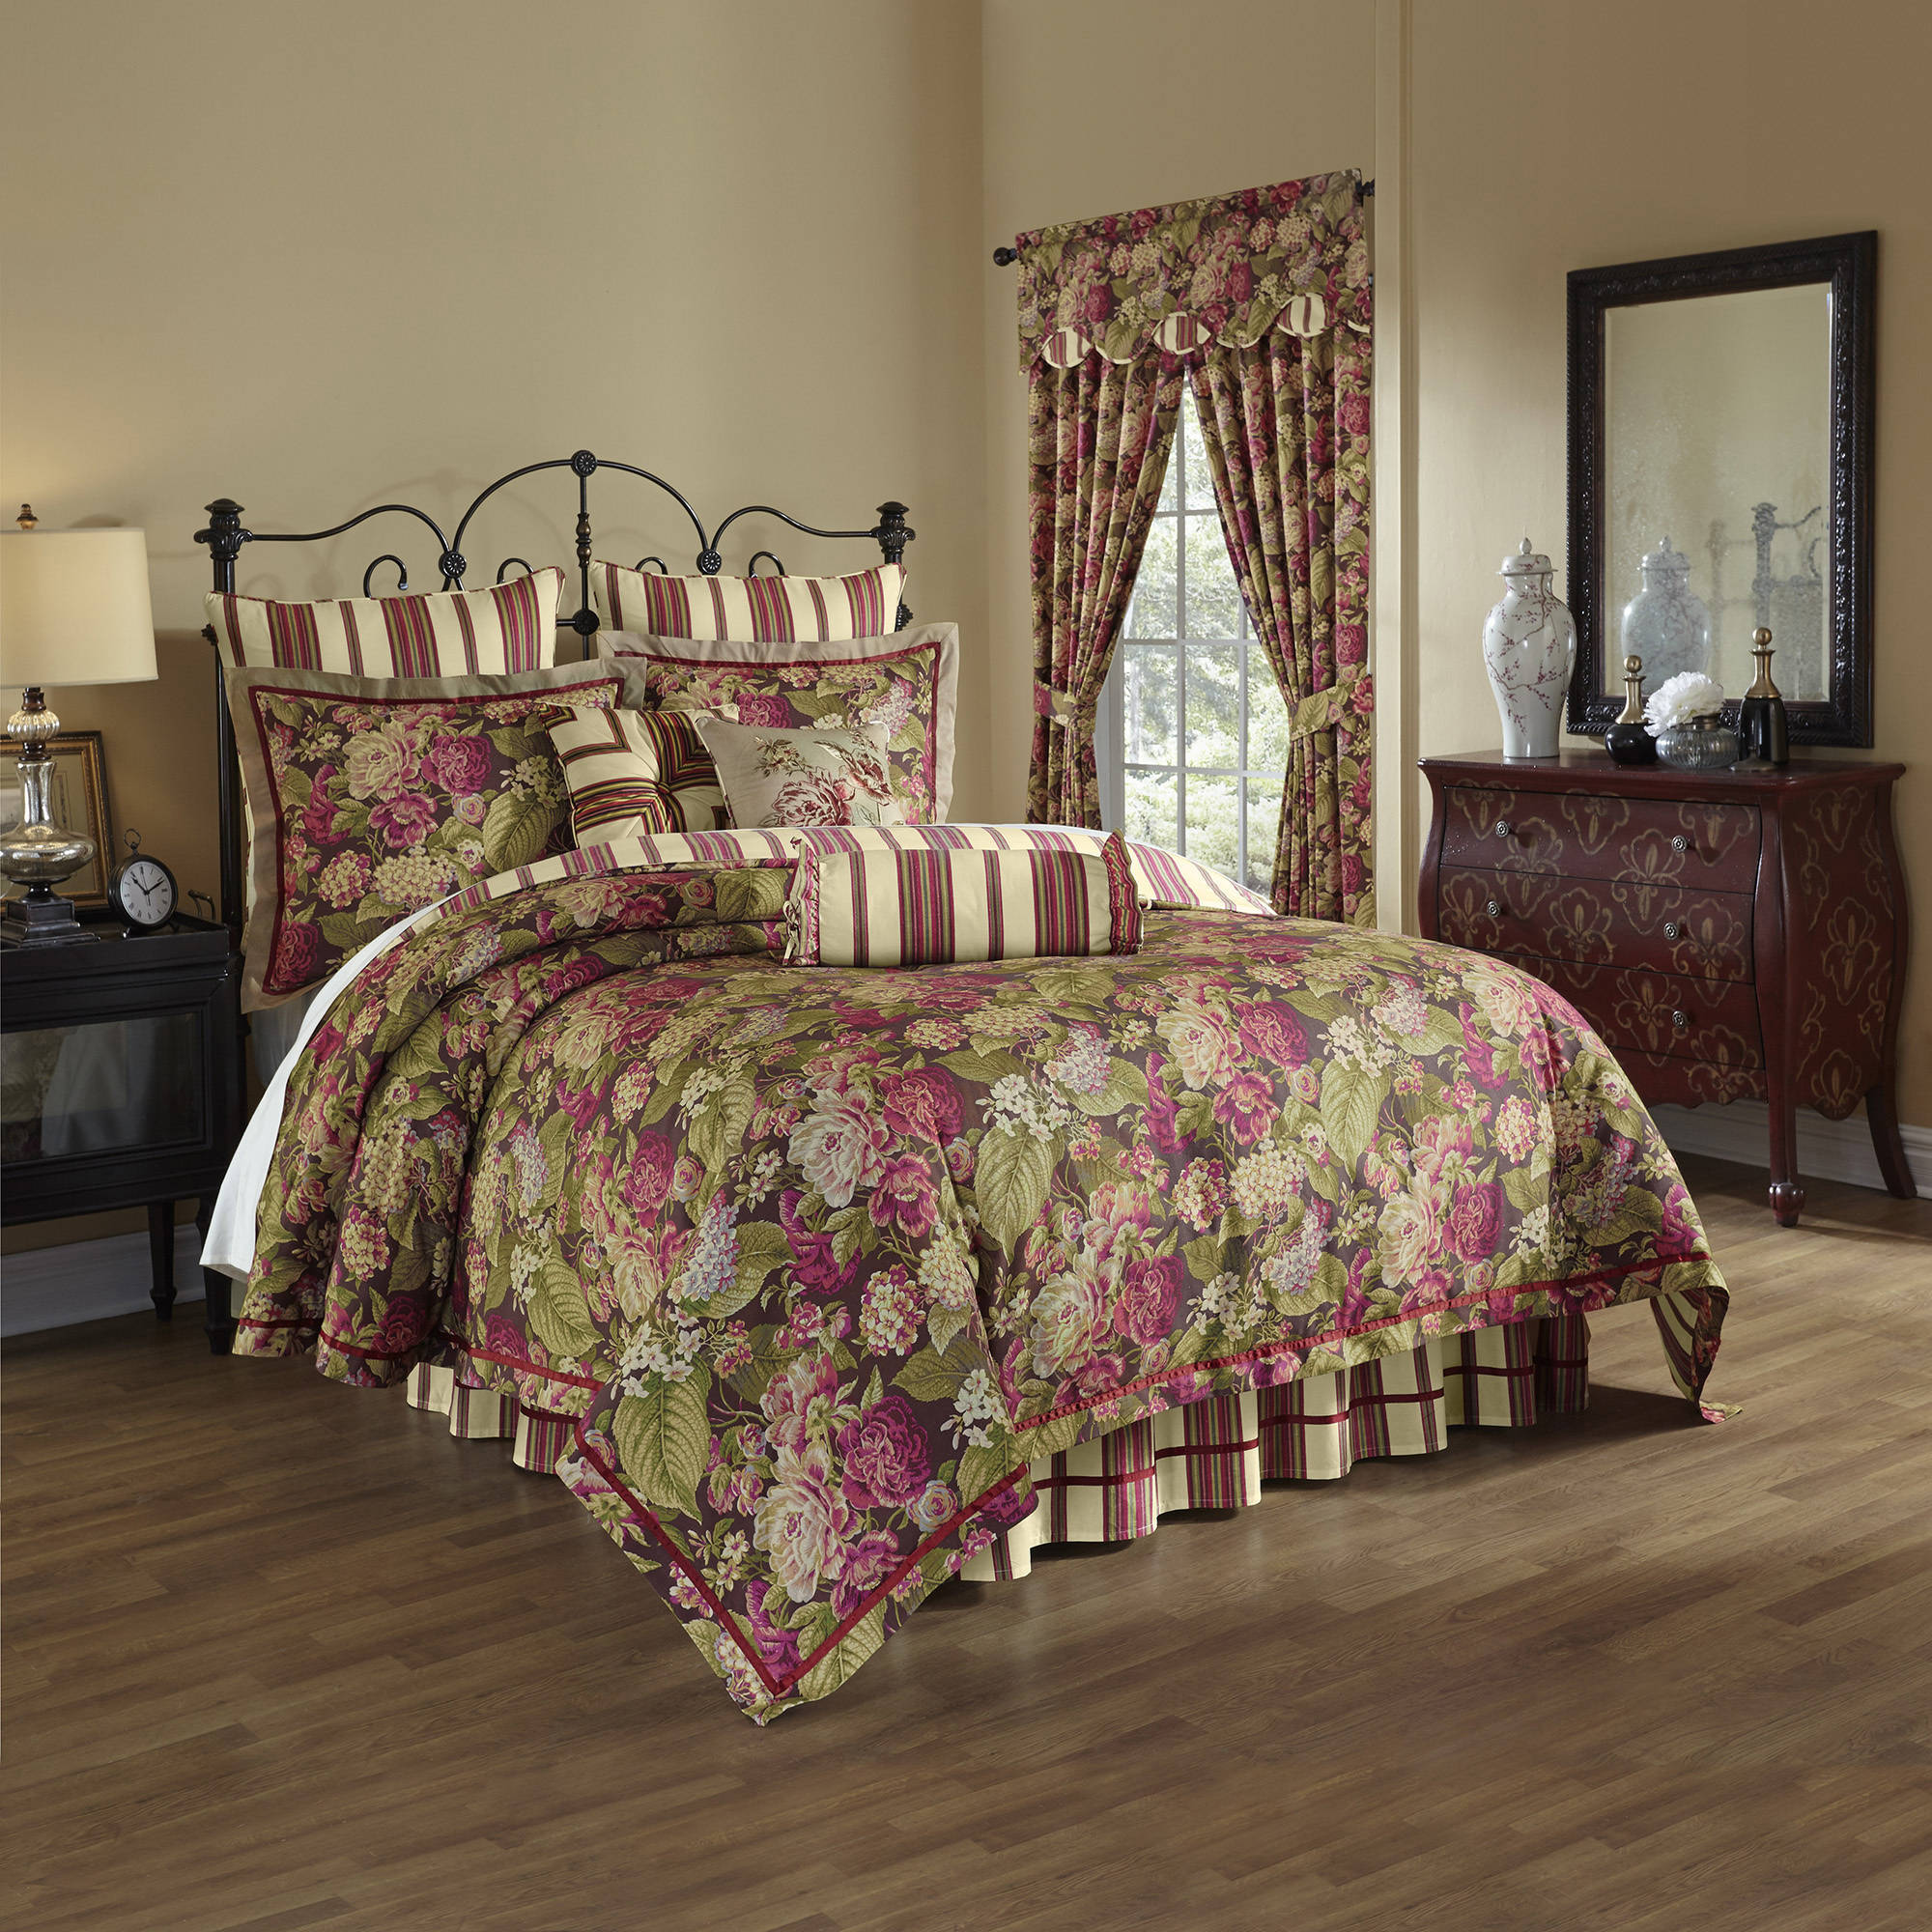 Waverly Floral Flourish Cordial 4-Piece Bedding Collection